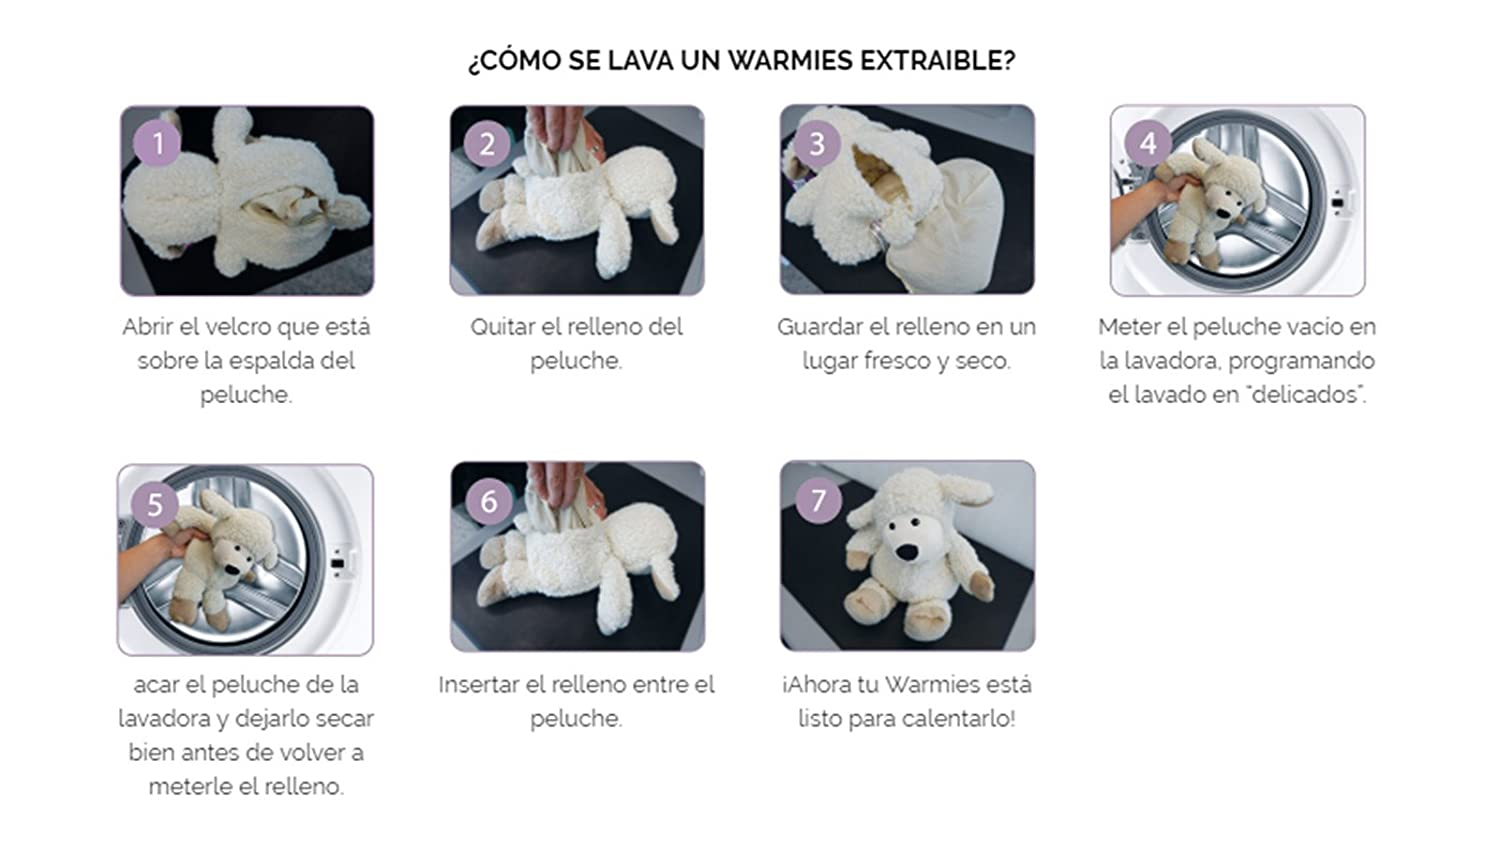 Peluche calentable 100% Natural Warmies Muñeco Patchwork WALLACE GROMIT 7010: Amazon.es: Juguetes y juegos